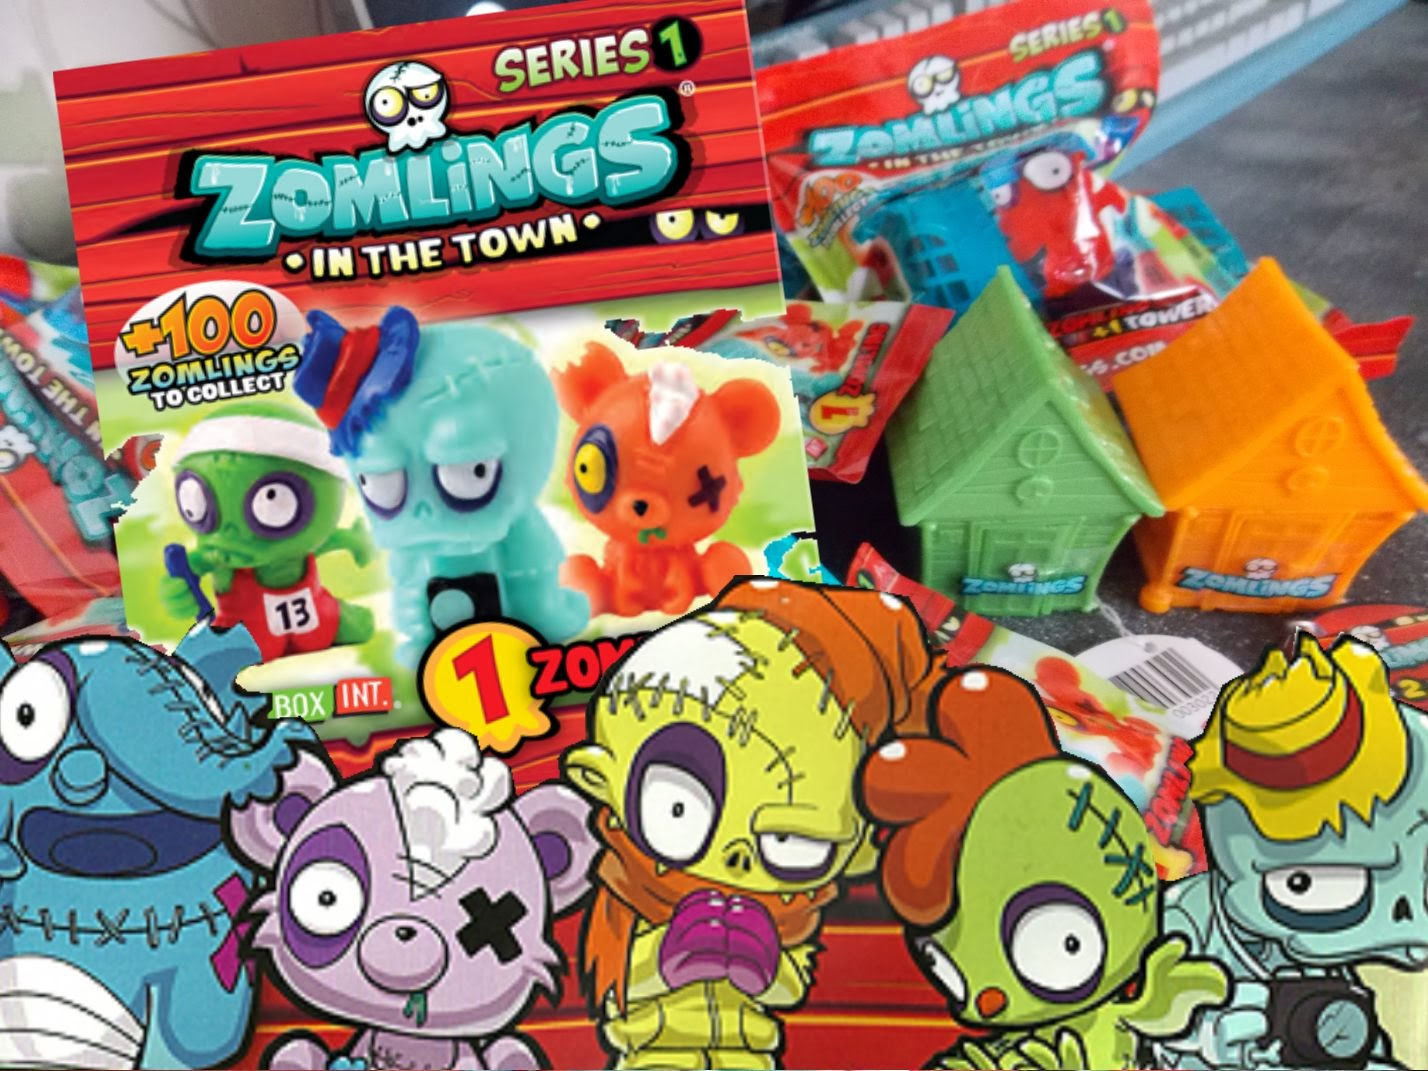 zomlings in the town series one collection